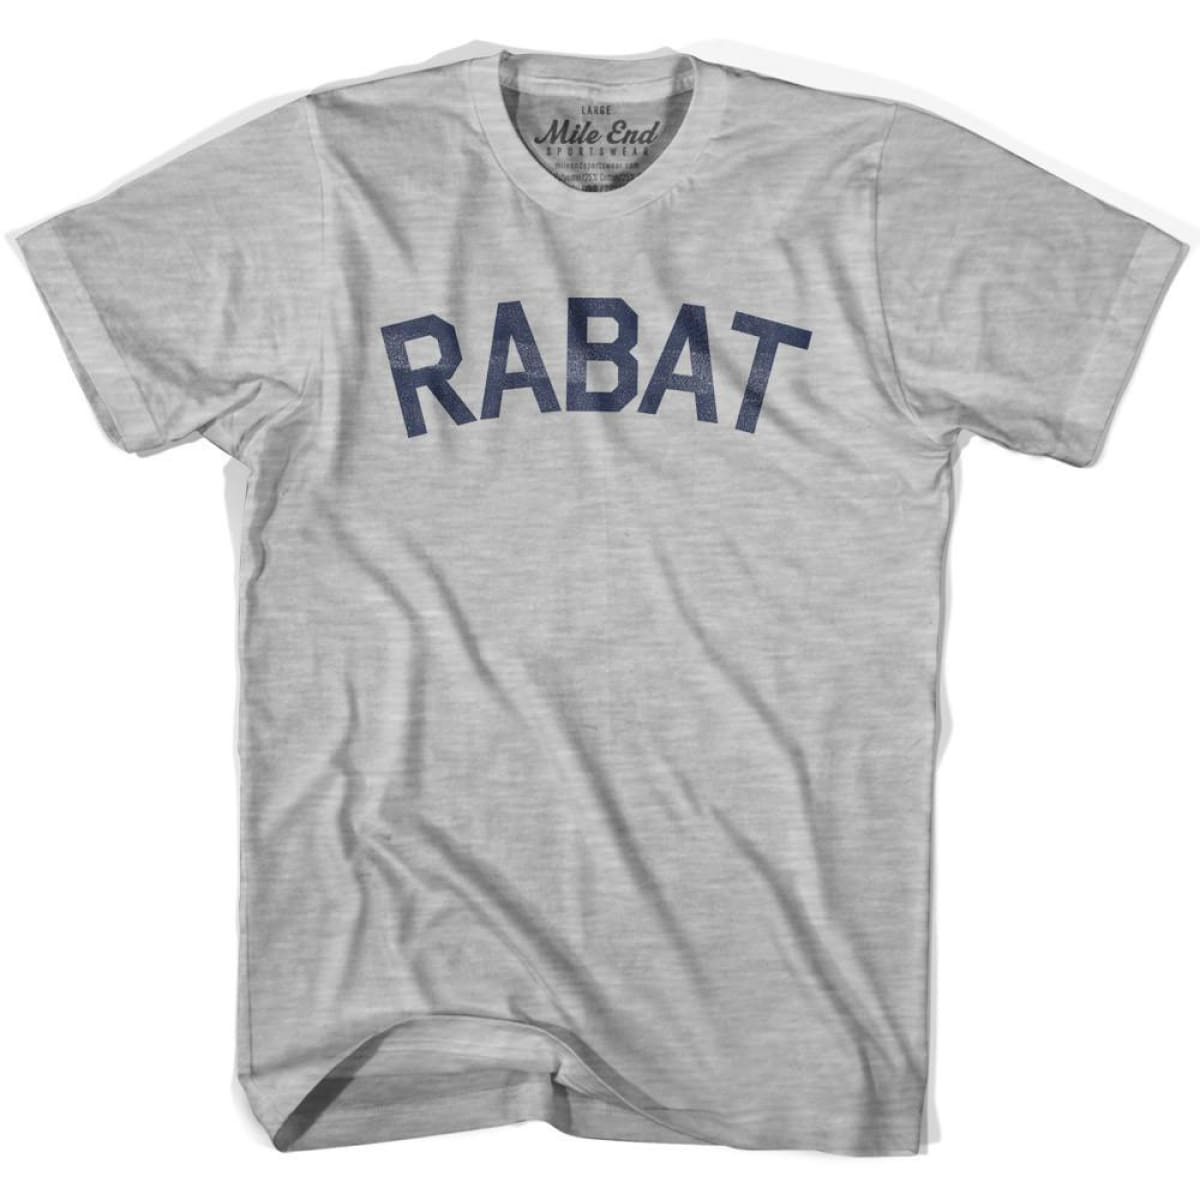 Rabat City Vintage T-shirt - Grey Heather / Youth X-Small - Mile End City